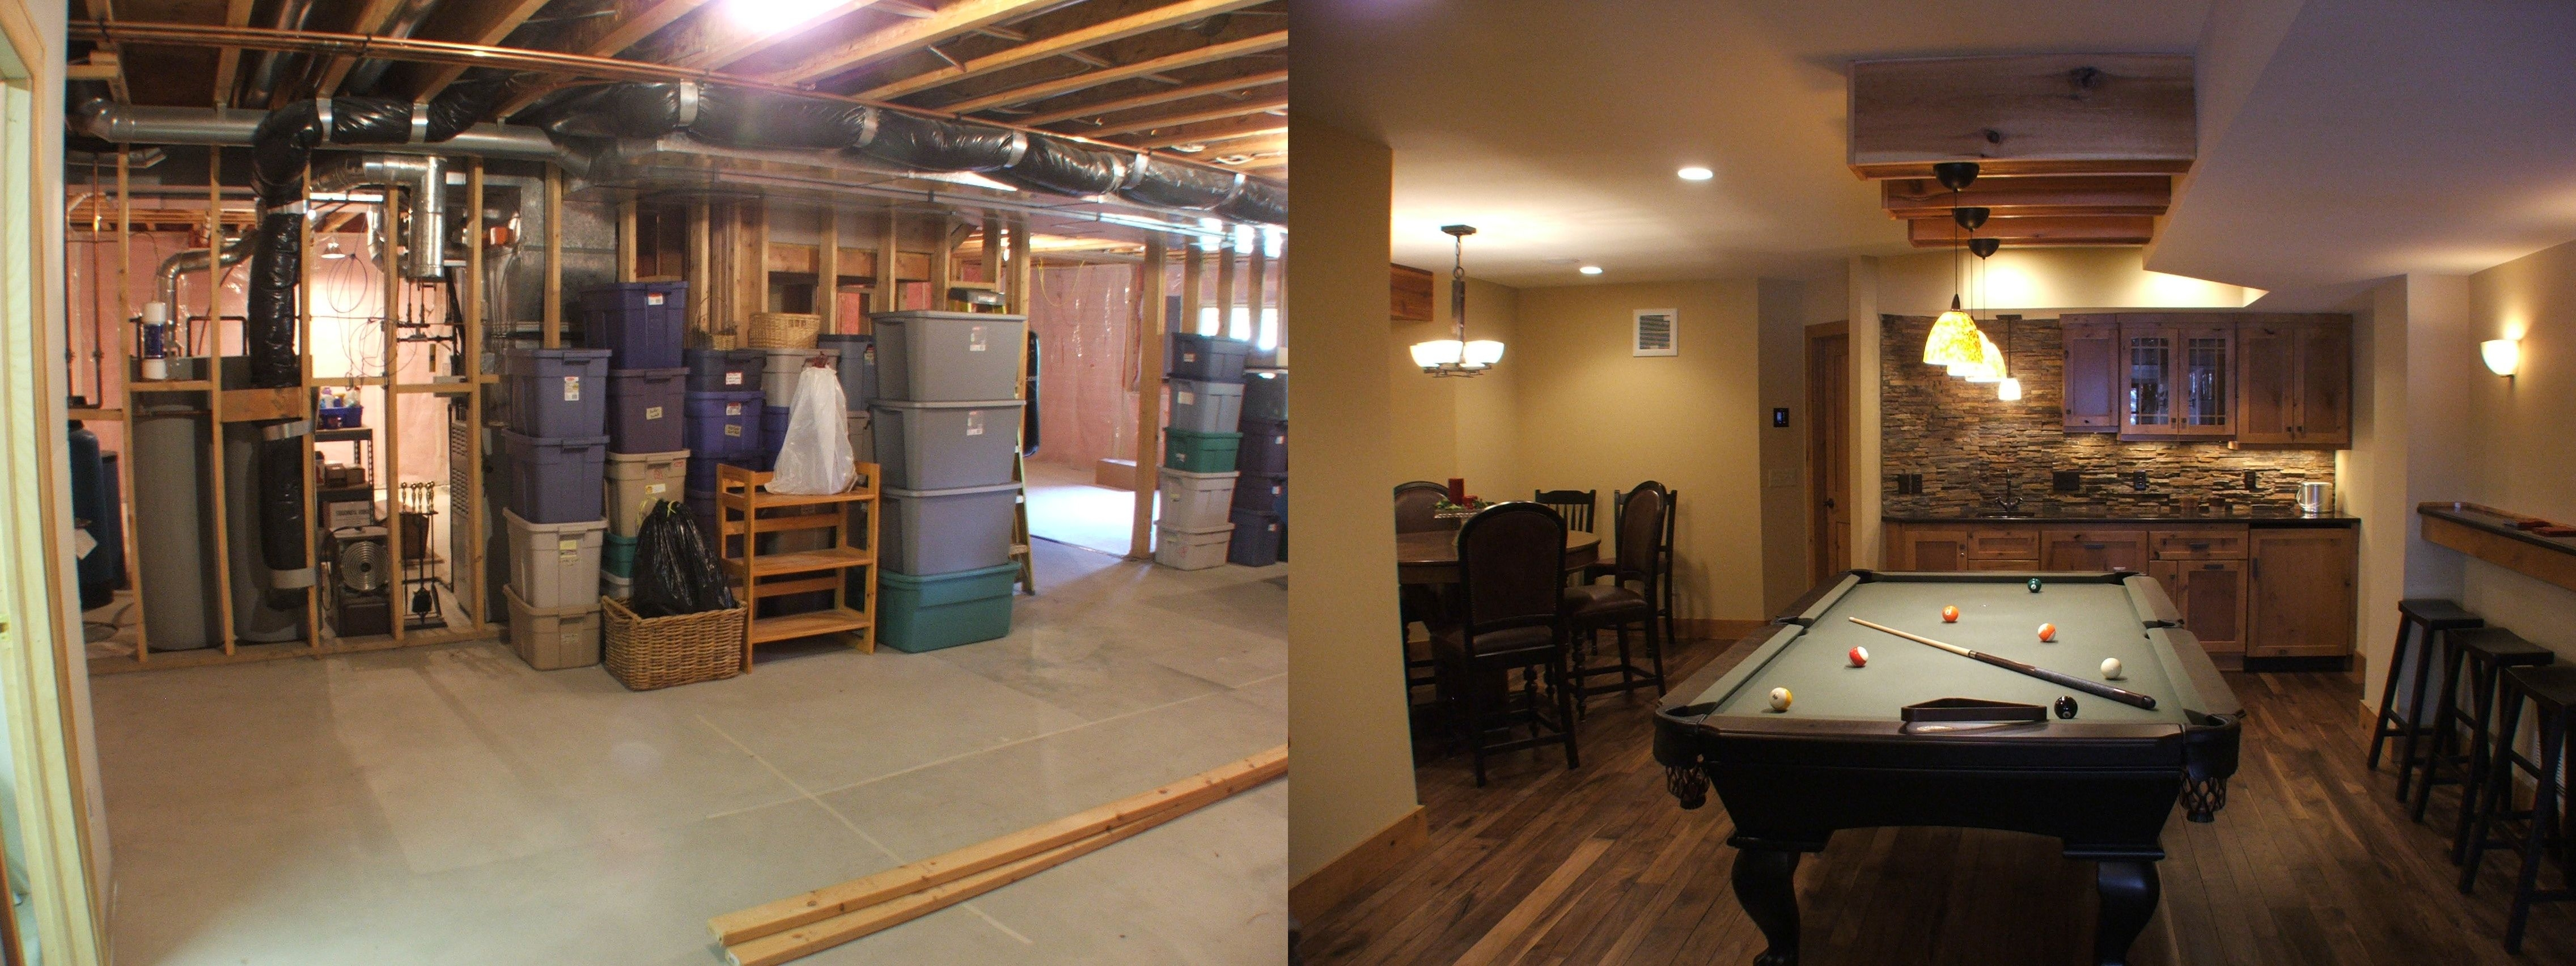 Permalink to Remodeled Basement Pictures Before After